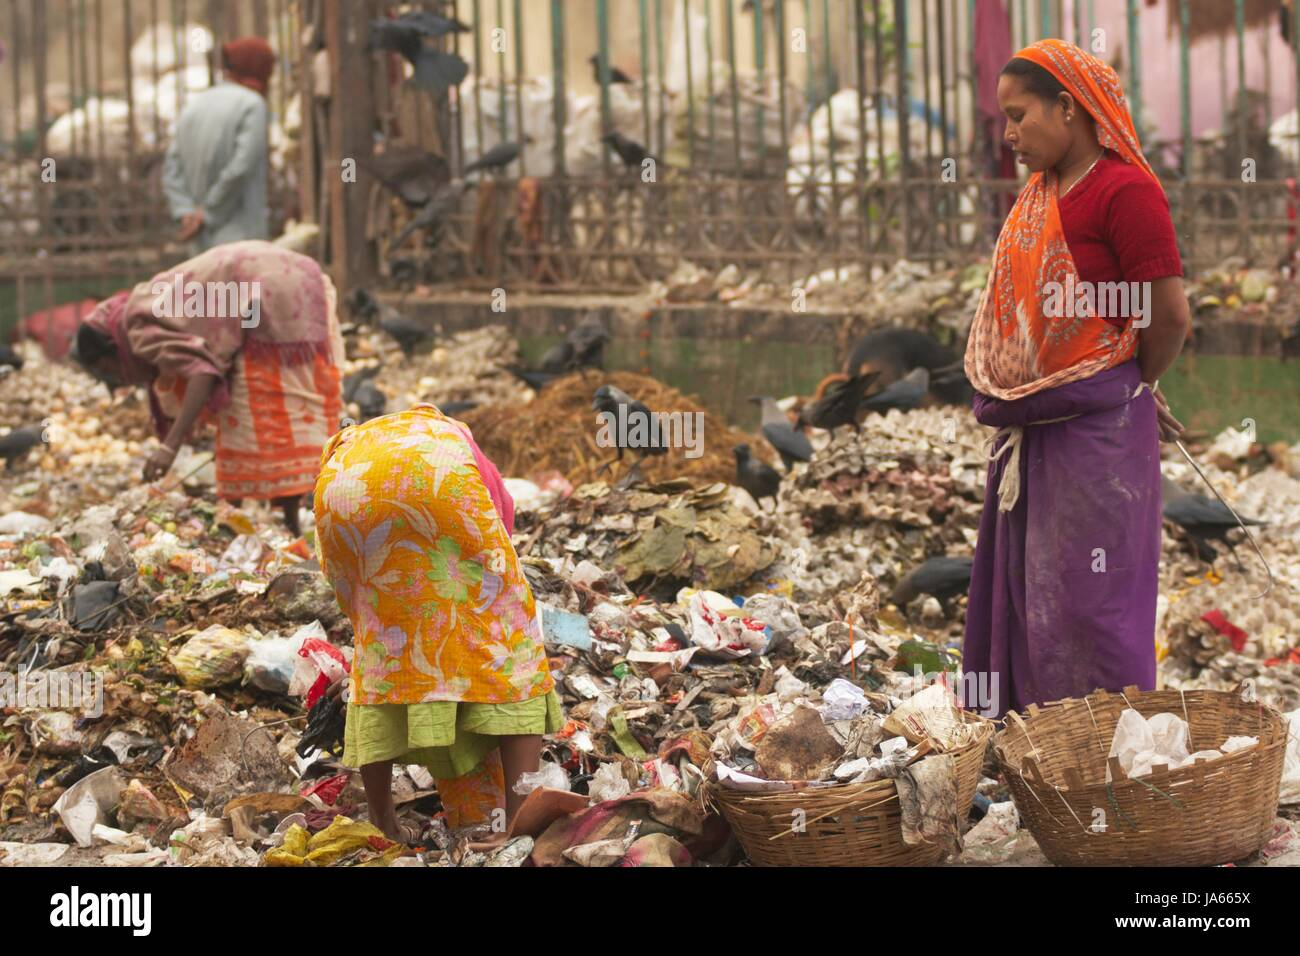 Indian women in brightly coloured clothing sorting through piles of rubbish in Calcutta, West Bengal, India. - Stock Image